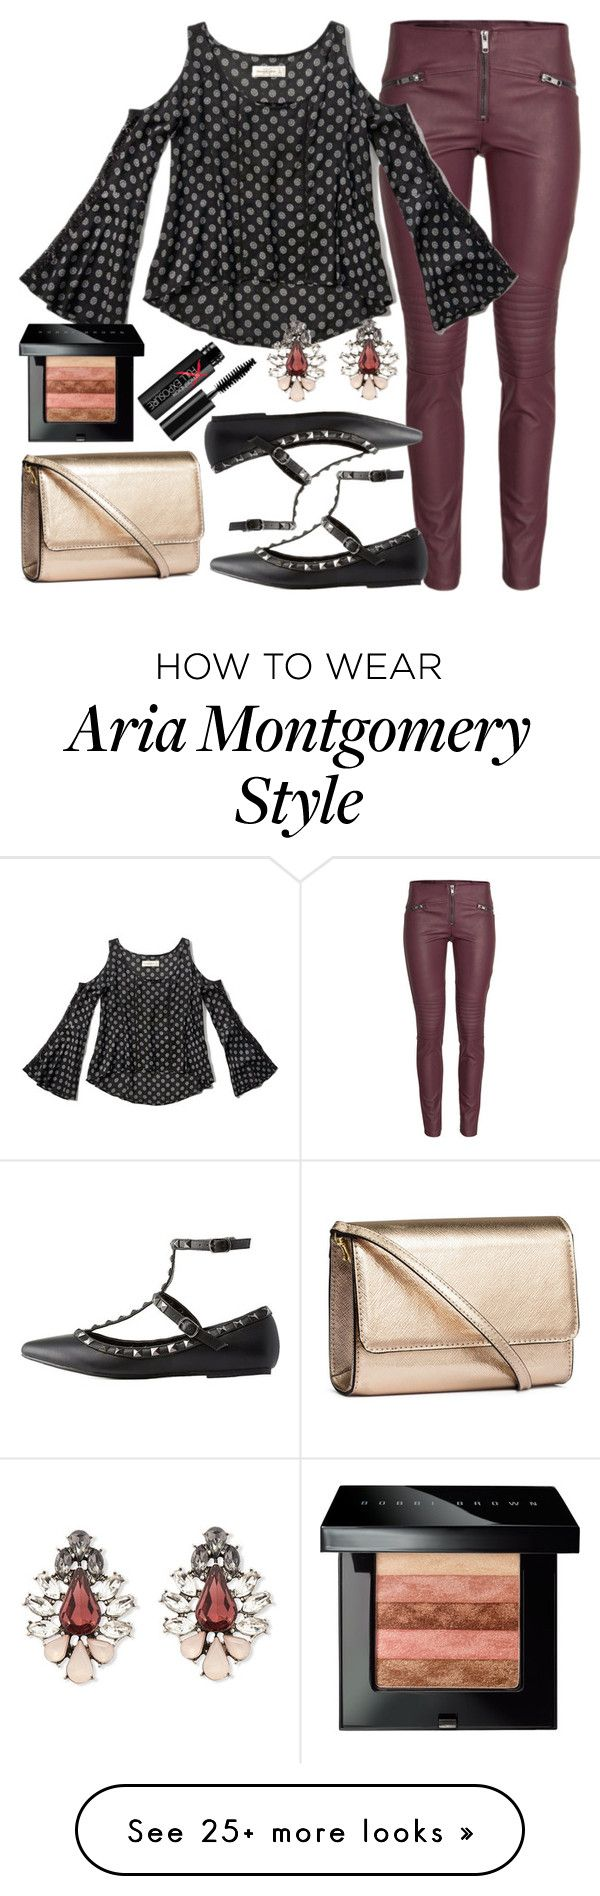 """""""Aria Montgomery inspired outfit"""" by liarsstyle on Polyvore featuring mode, H&M, Abercrombie & Fitch, Charlotte Russe, Forever 21, Bobbi Brown Cosmetics, Smashbox, NightOut en party"""